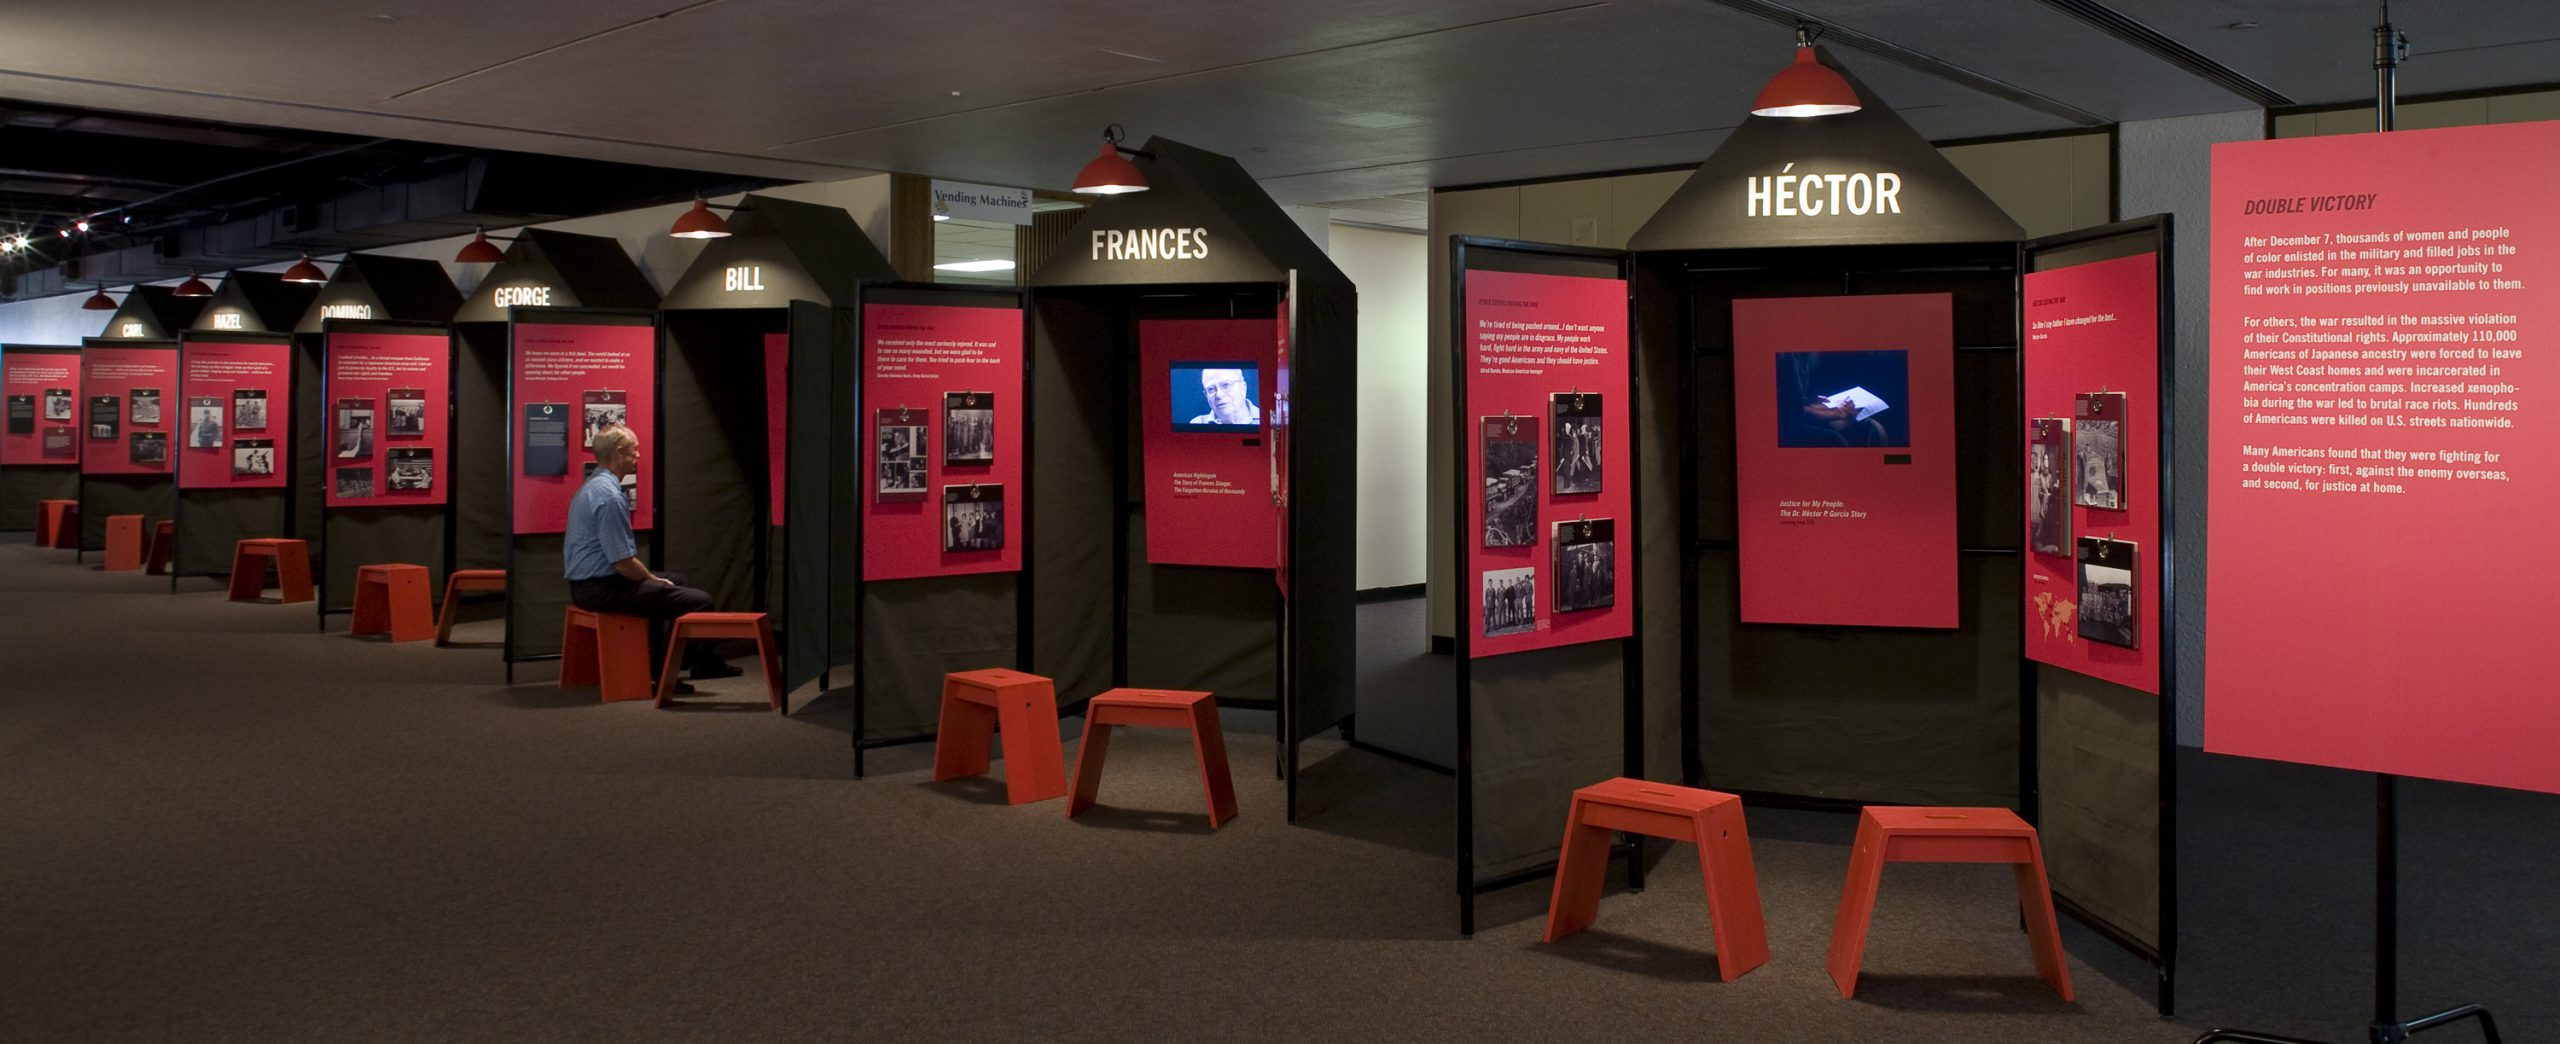 Project image 3 for Fighting for Democracy Traveling Exhibit, Japanese American National Museum